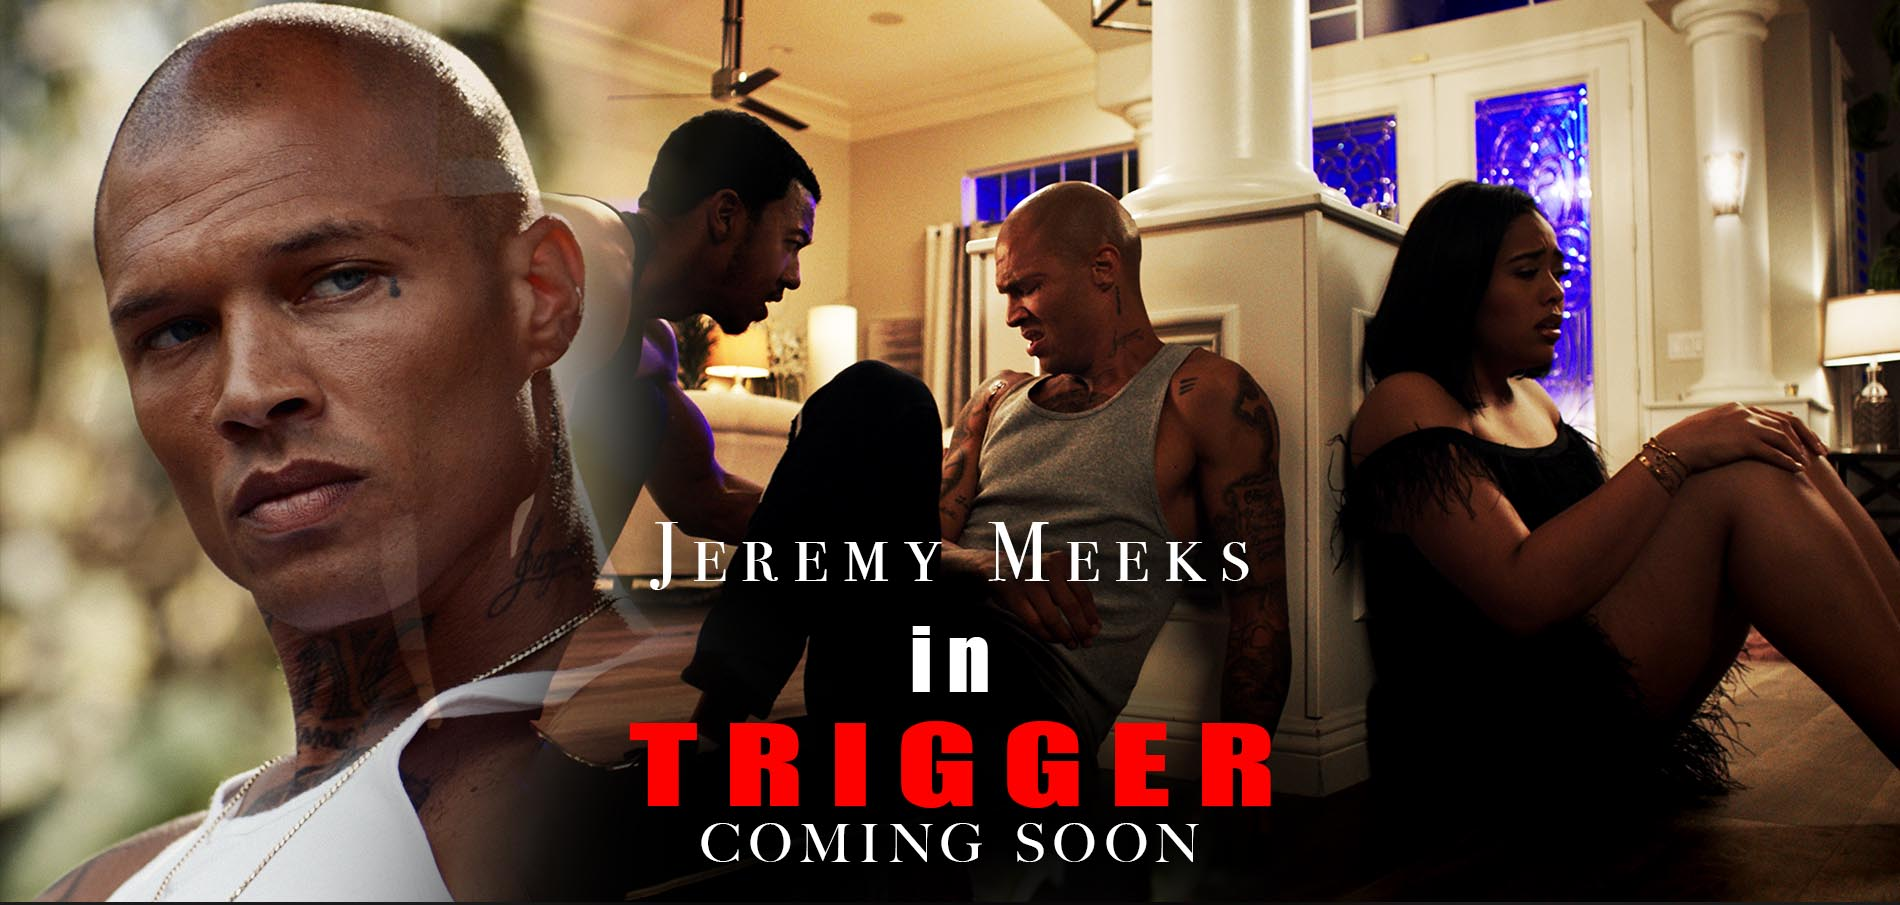 Trigger Jeremy Meeks Website BANNER footage films Christopher B Stokes